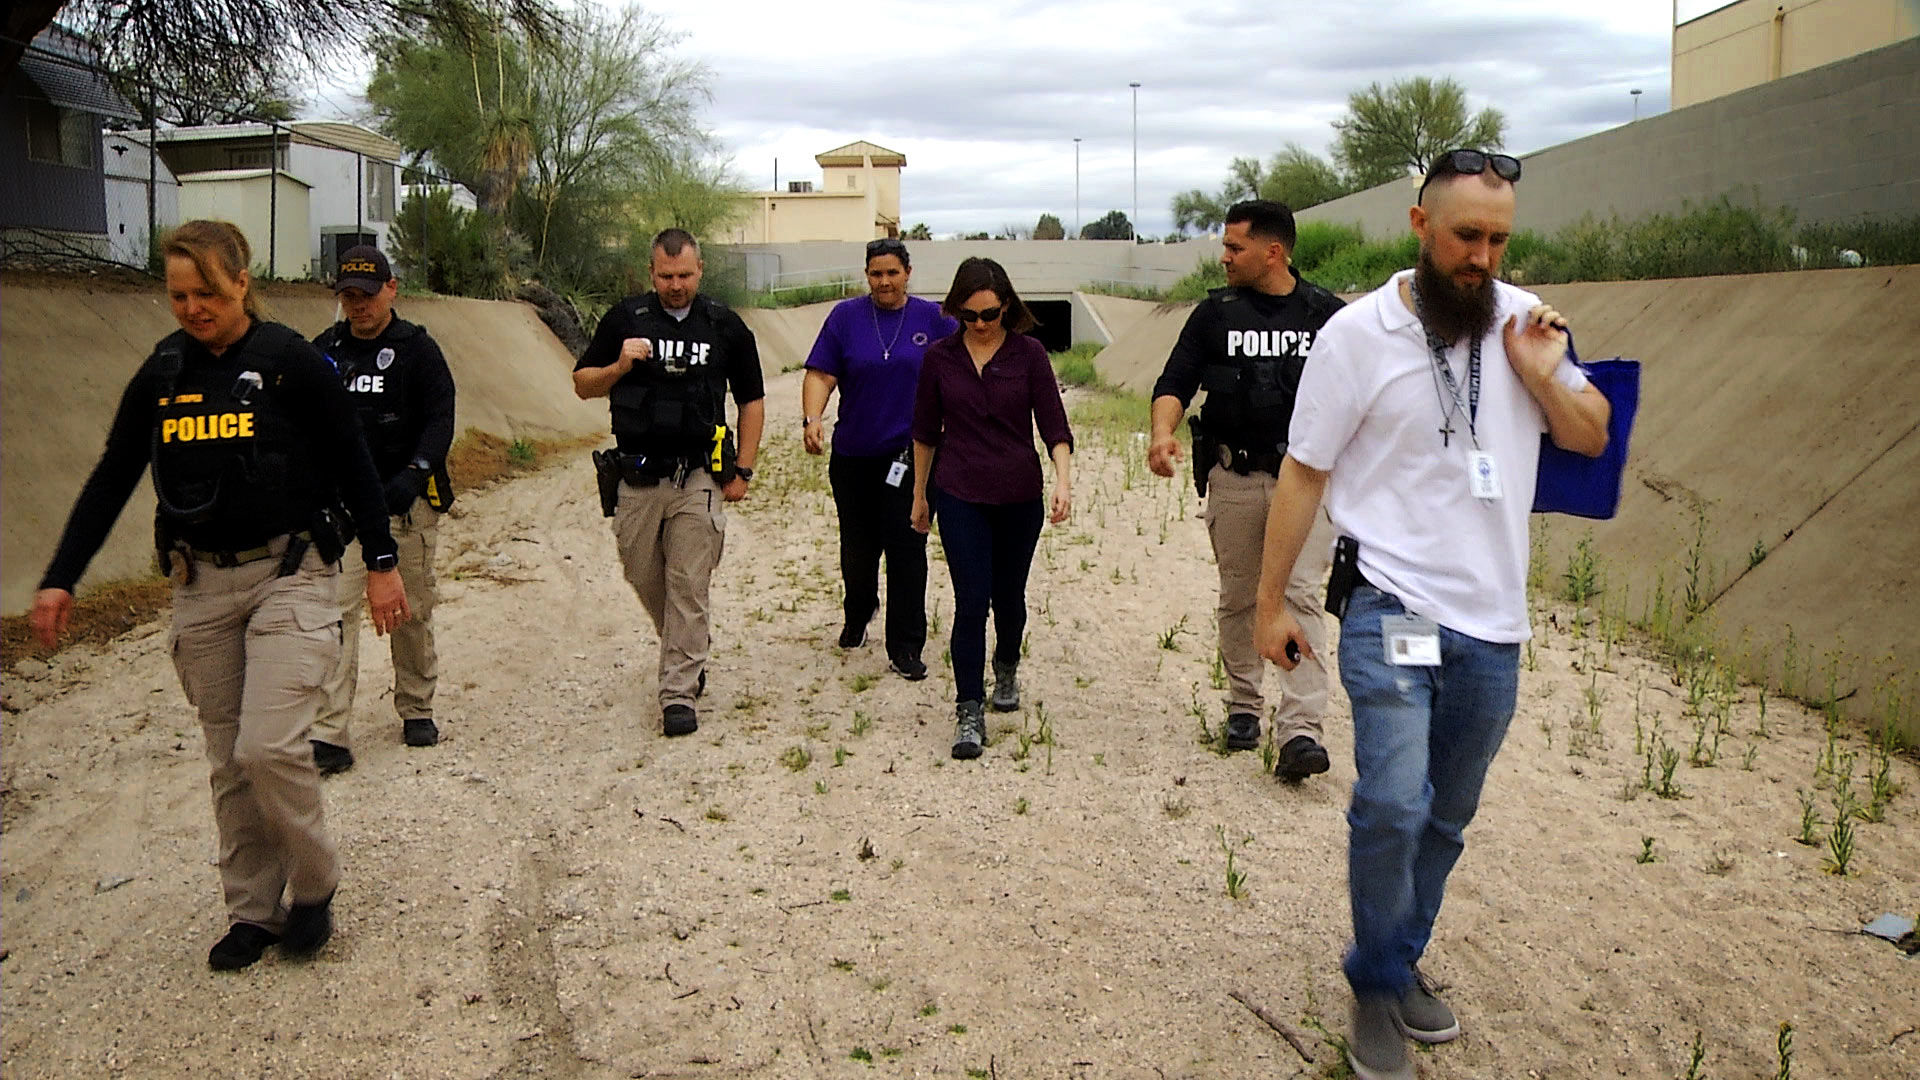 Arizona 360 host Lorraine Rivera (center) walks through a wash with members of the Tucson Police Department's Substance Use Resource Team on March 10, 2020. In an area common for drug use, Rivera saw how officers implement the department's Deflection Program that allows them to offer people treatment for drug-related crimes instead of arrest.